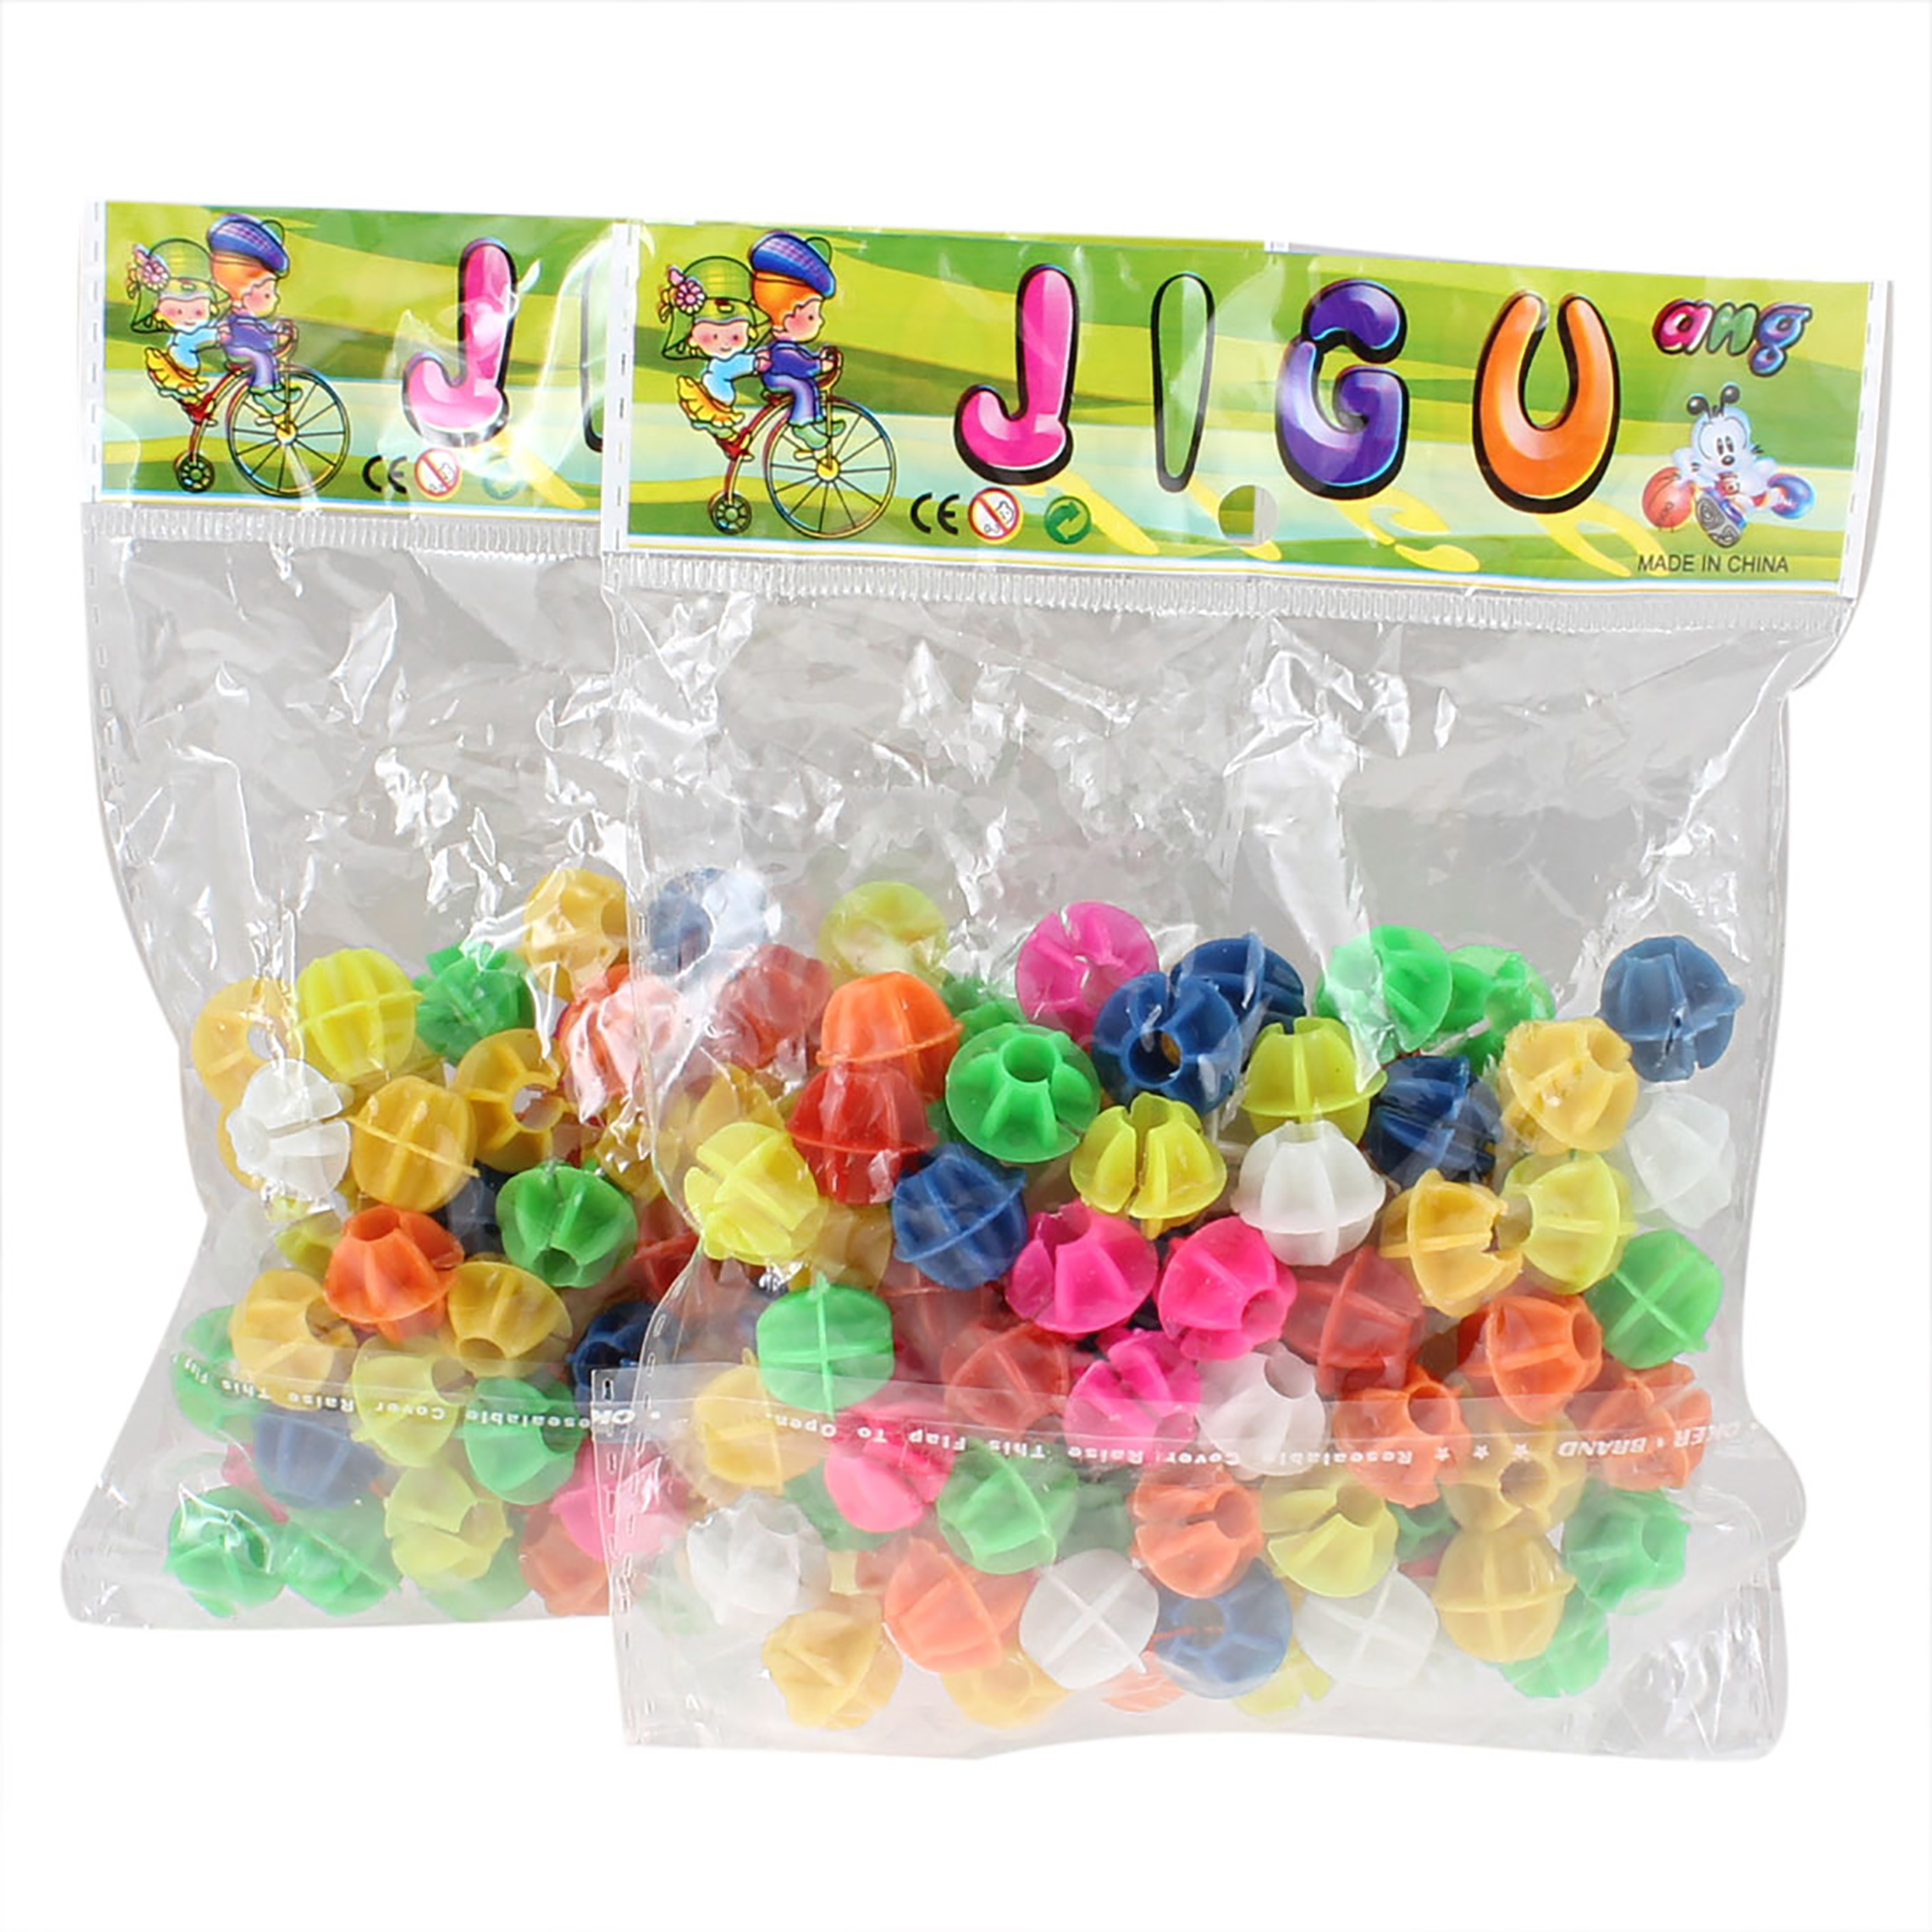 100 Pcs Colorful Plastic Clip Spoke Bead Bicycle Decor for Bike